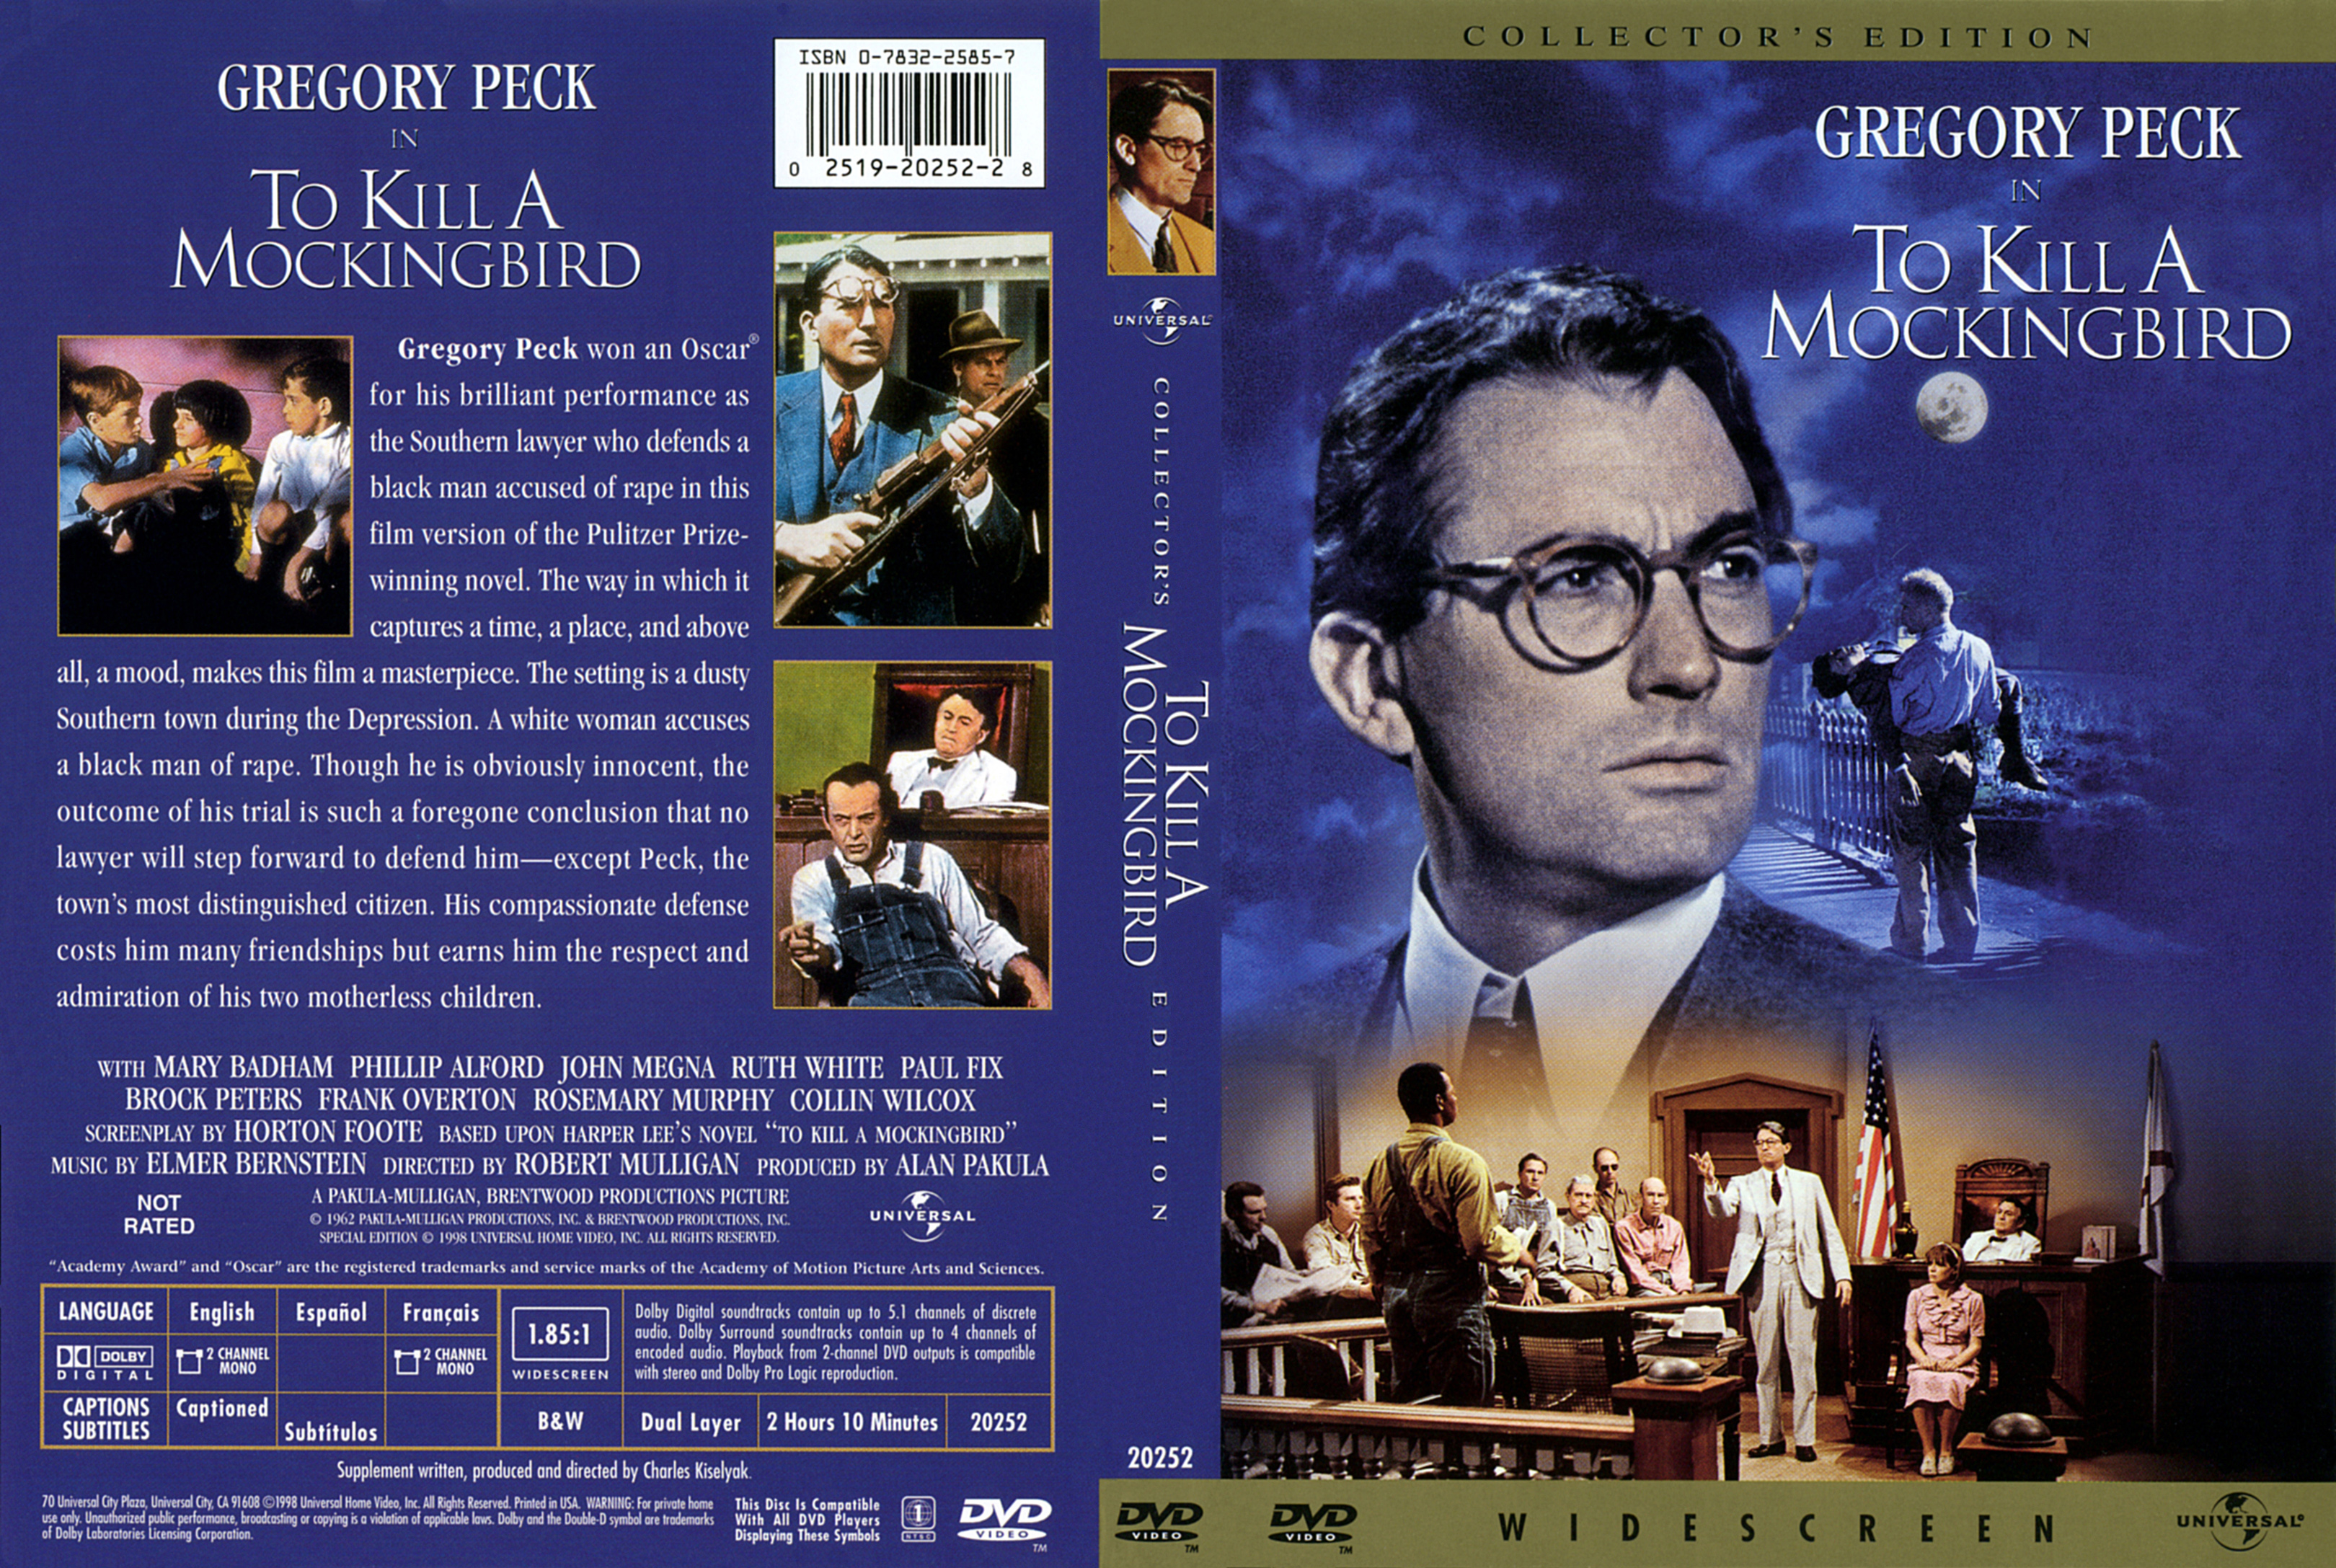 To Kill a Mockingbird is a 1962 American drama film directed by Robert Mulligan The screenplay by Horton Foote is based on Harper Lees 1960 Pulitzer Prizewinning